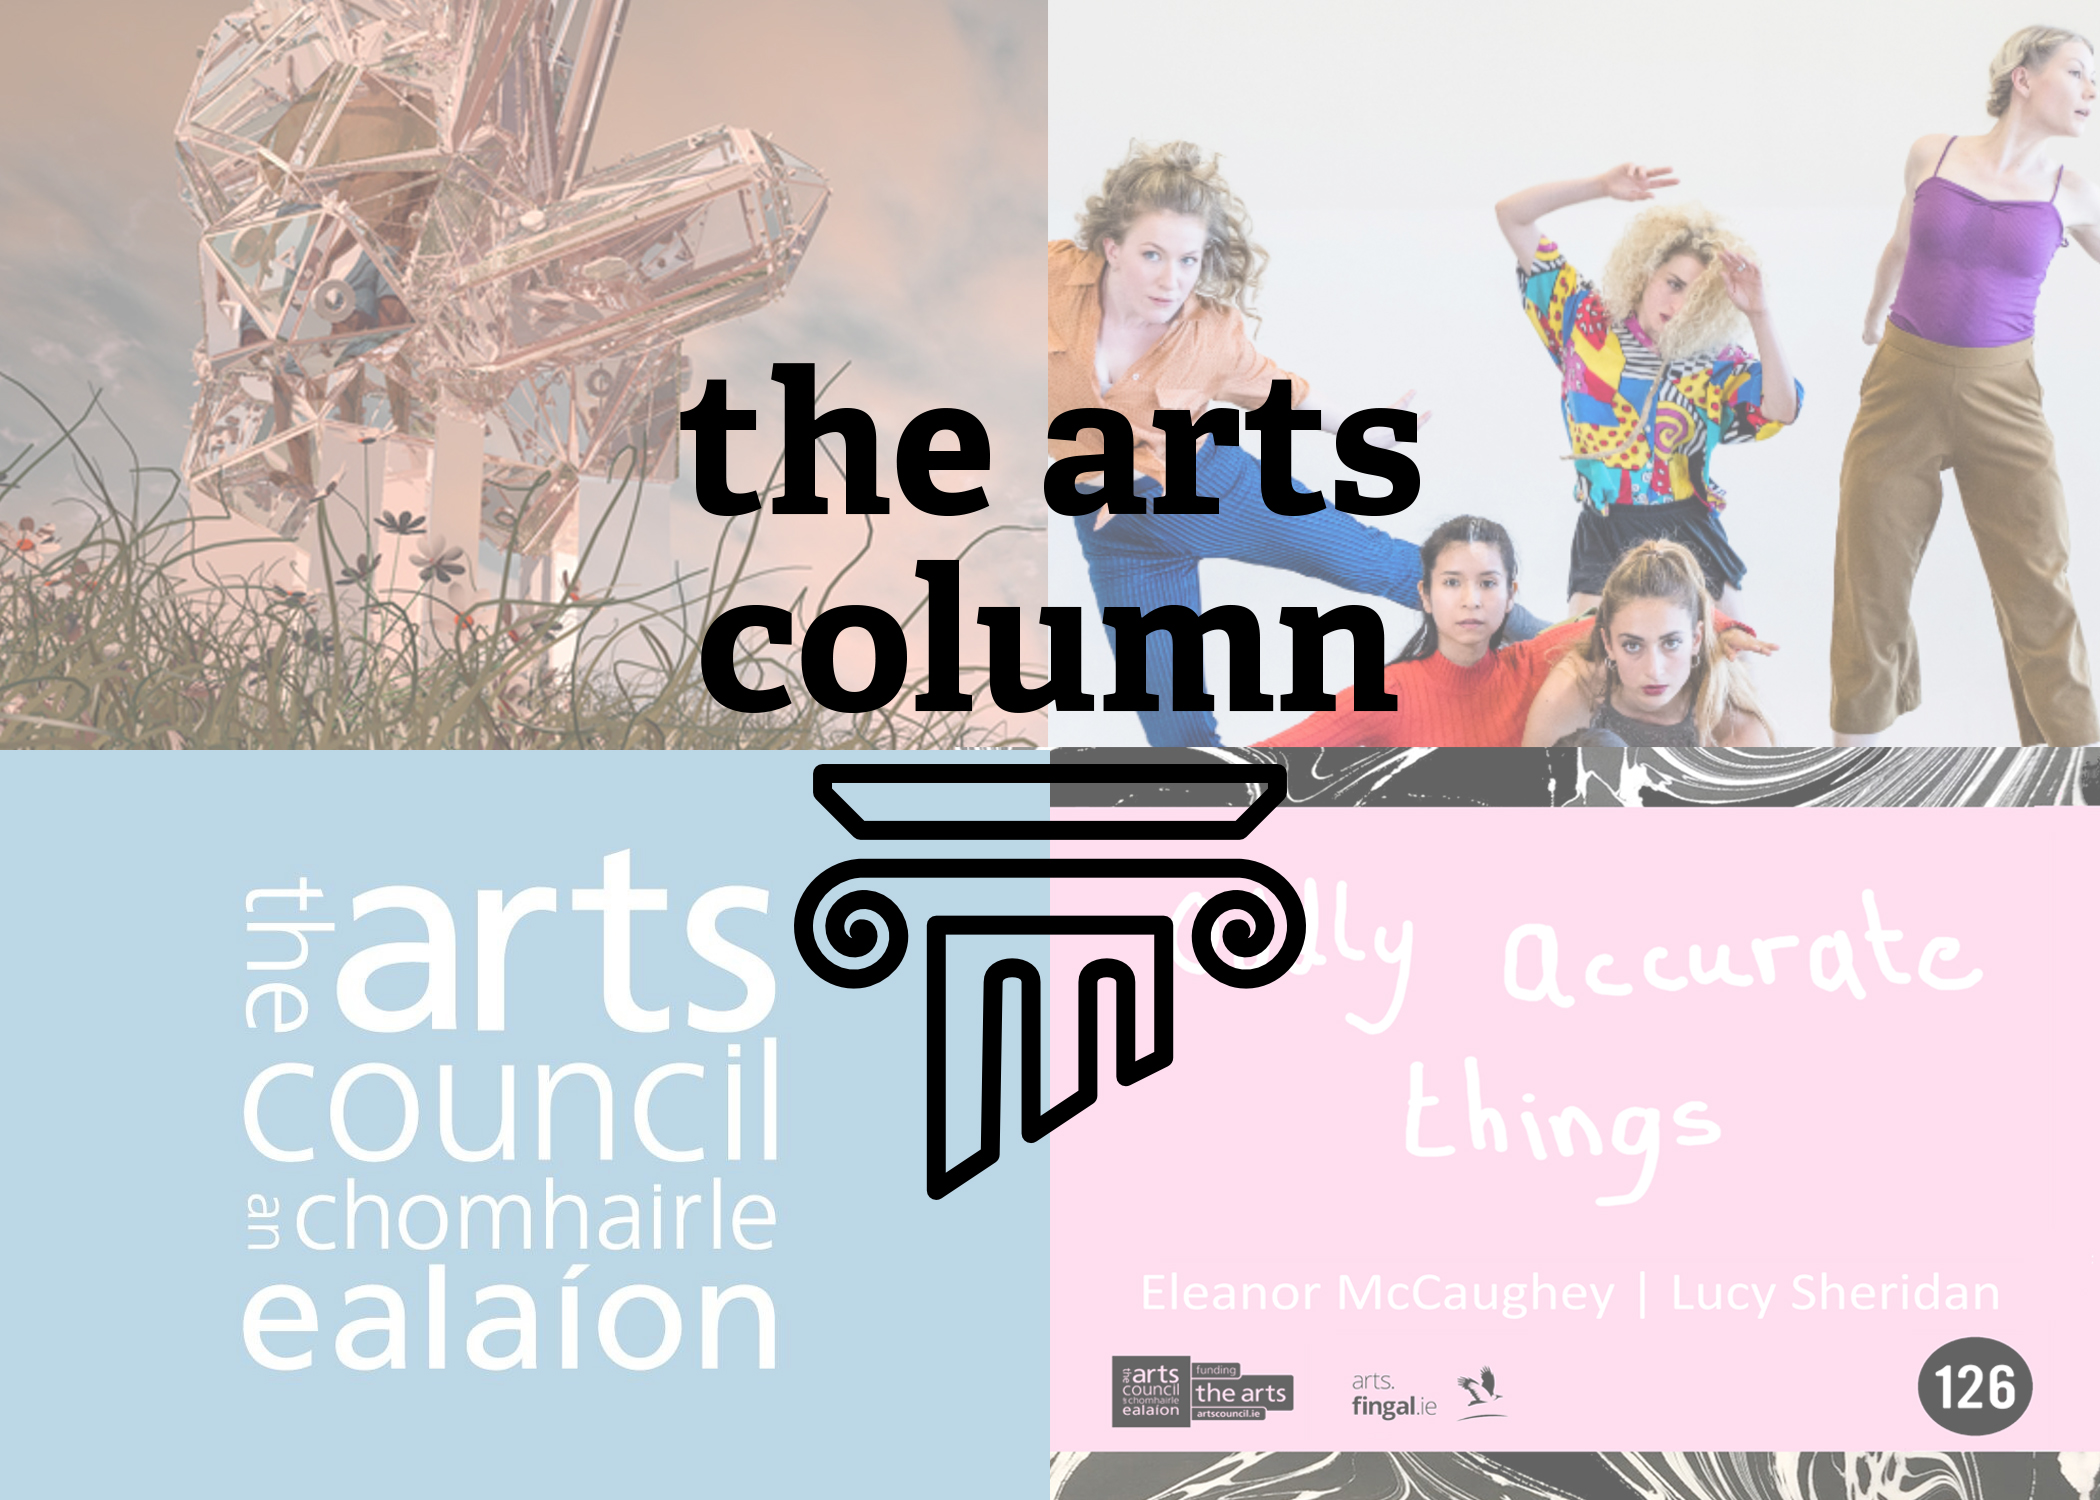 the_arts_column_25